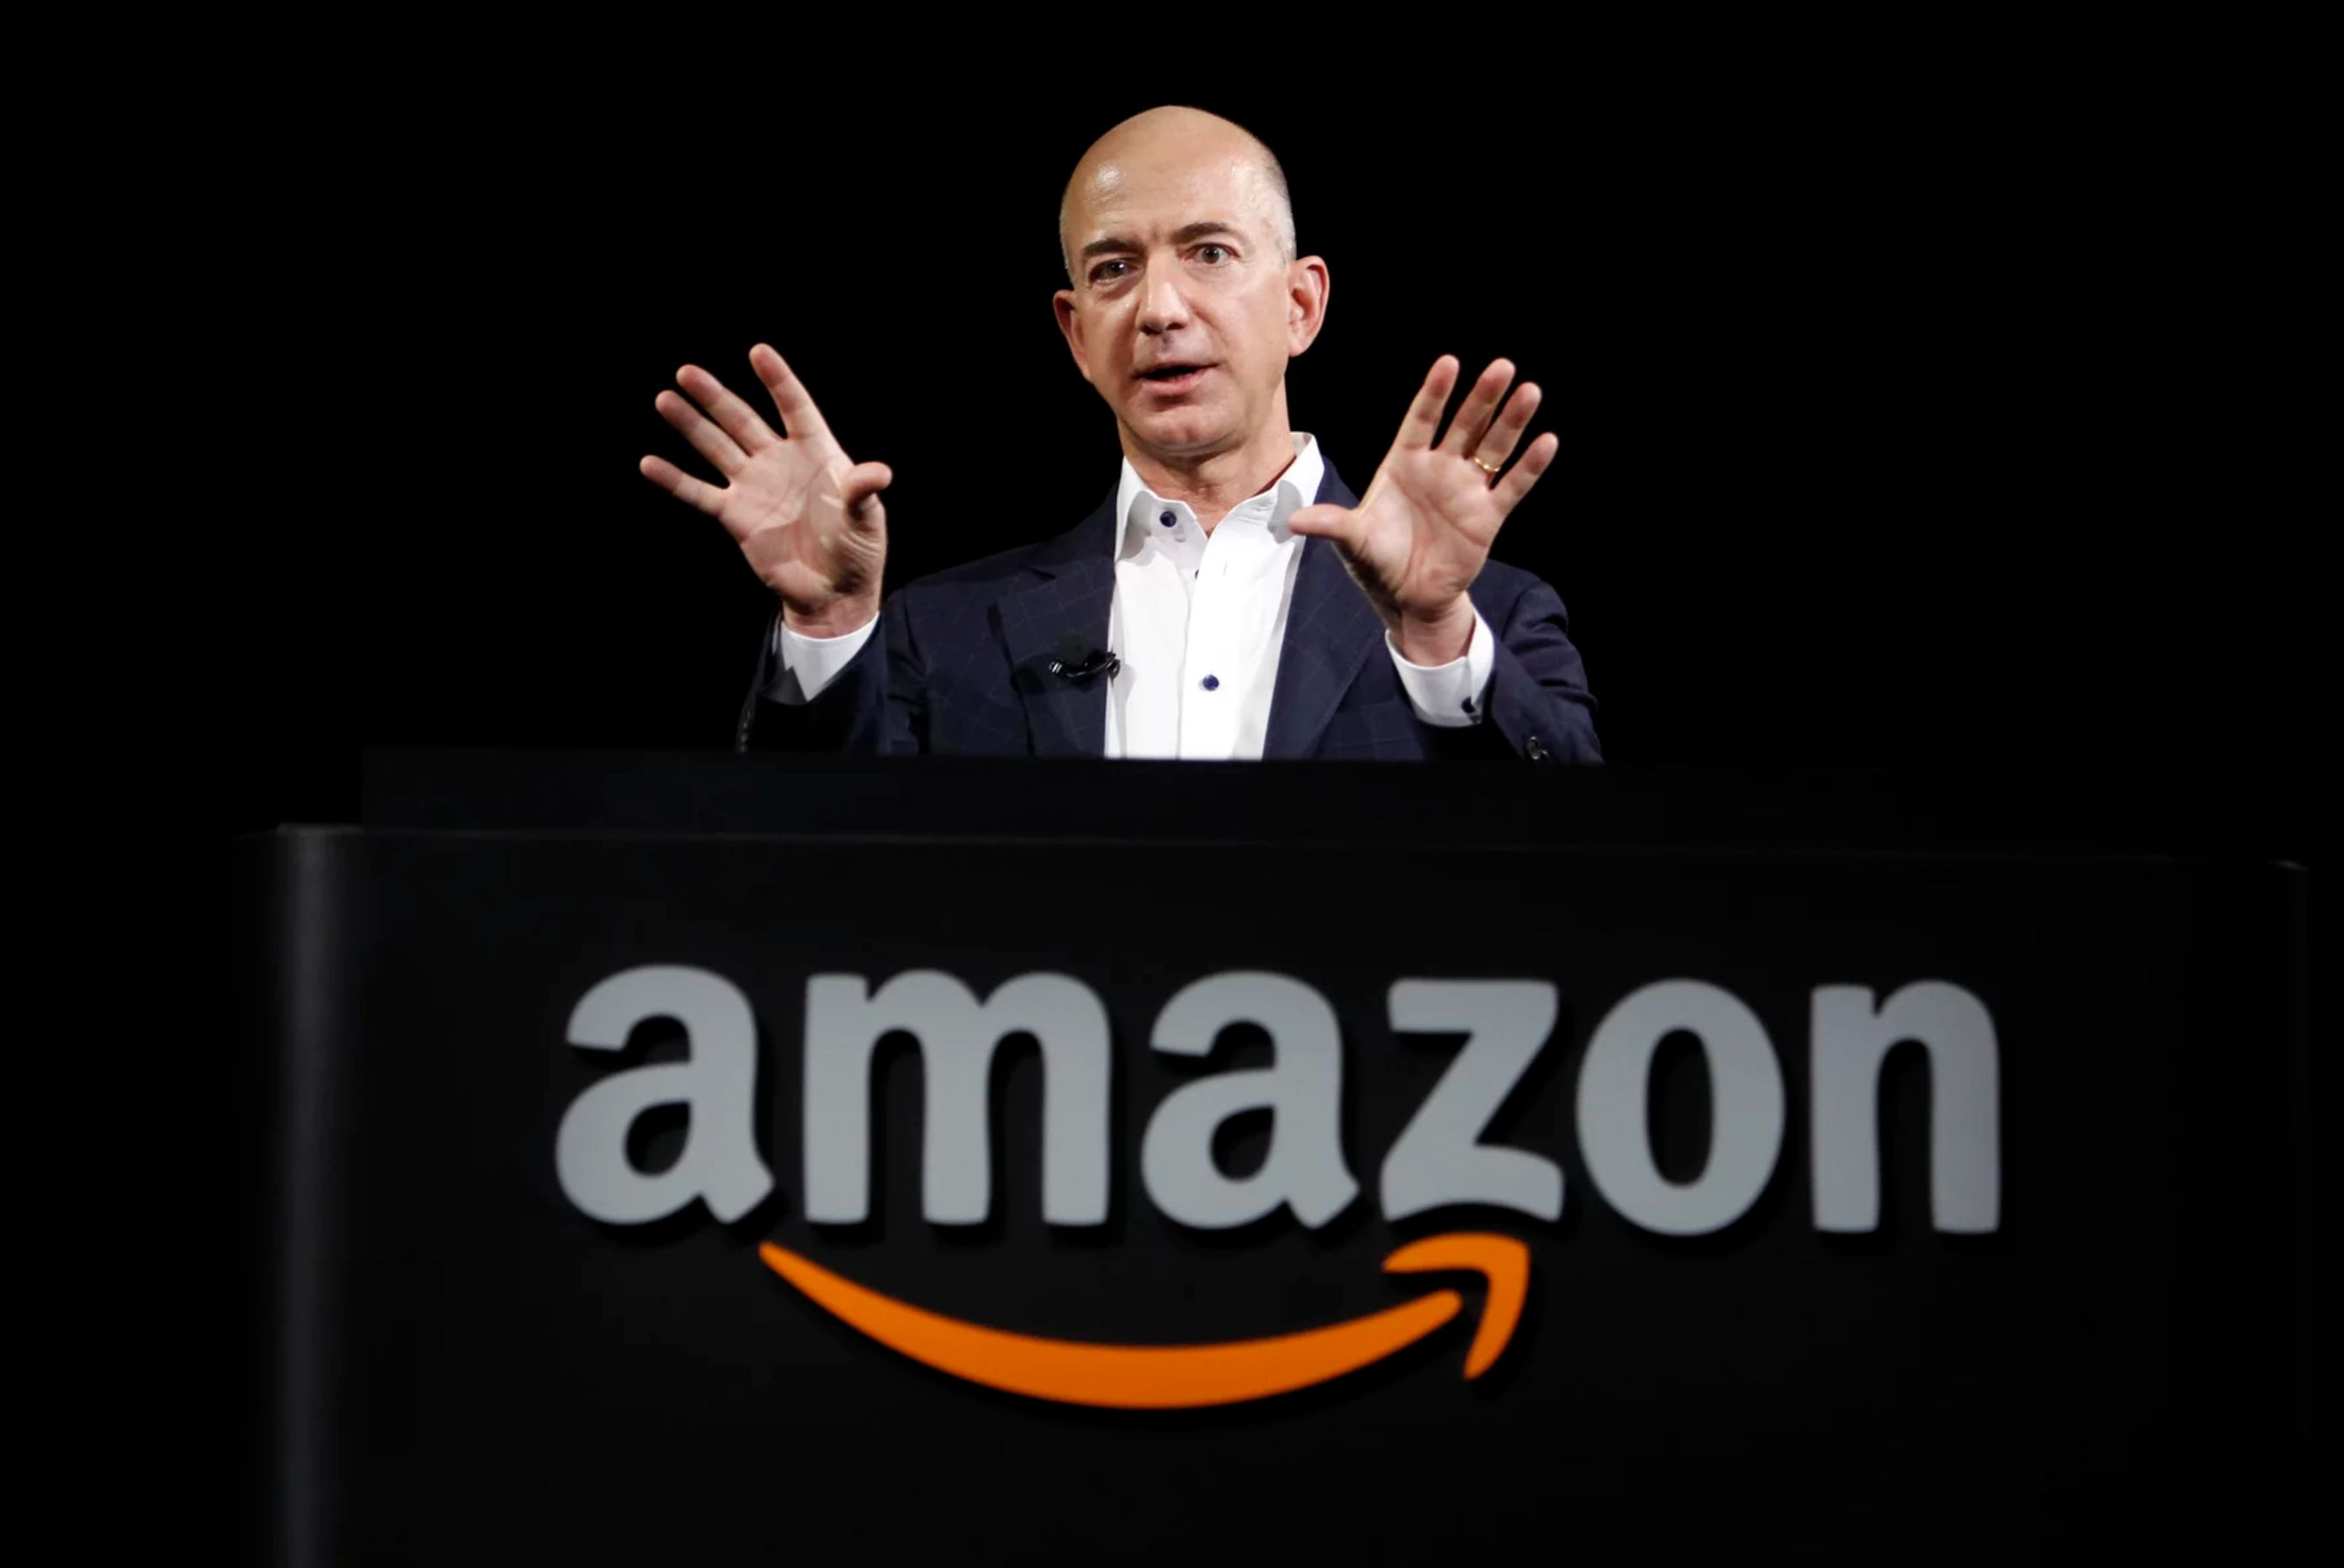 Jeff Bezos, the CEO of Amazon, at a news conference in 2012. Bezos figured out a way to make shopping effortless and deliveri